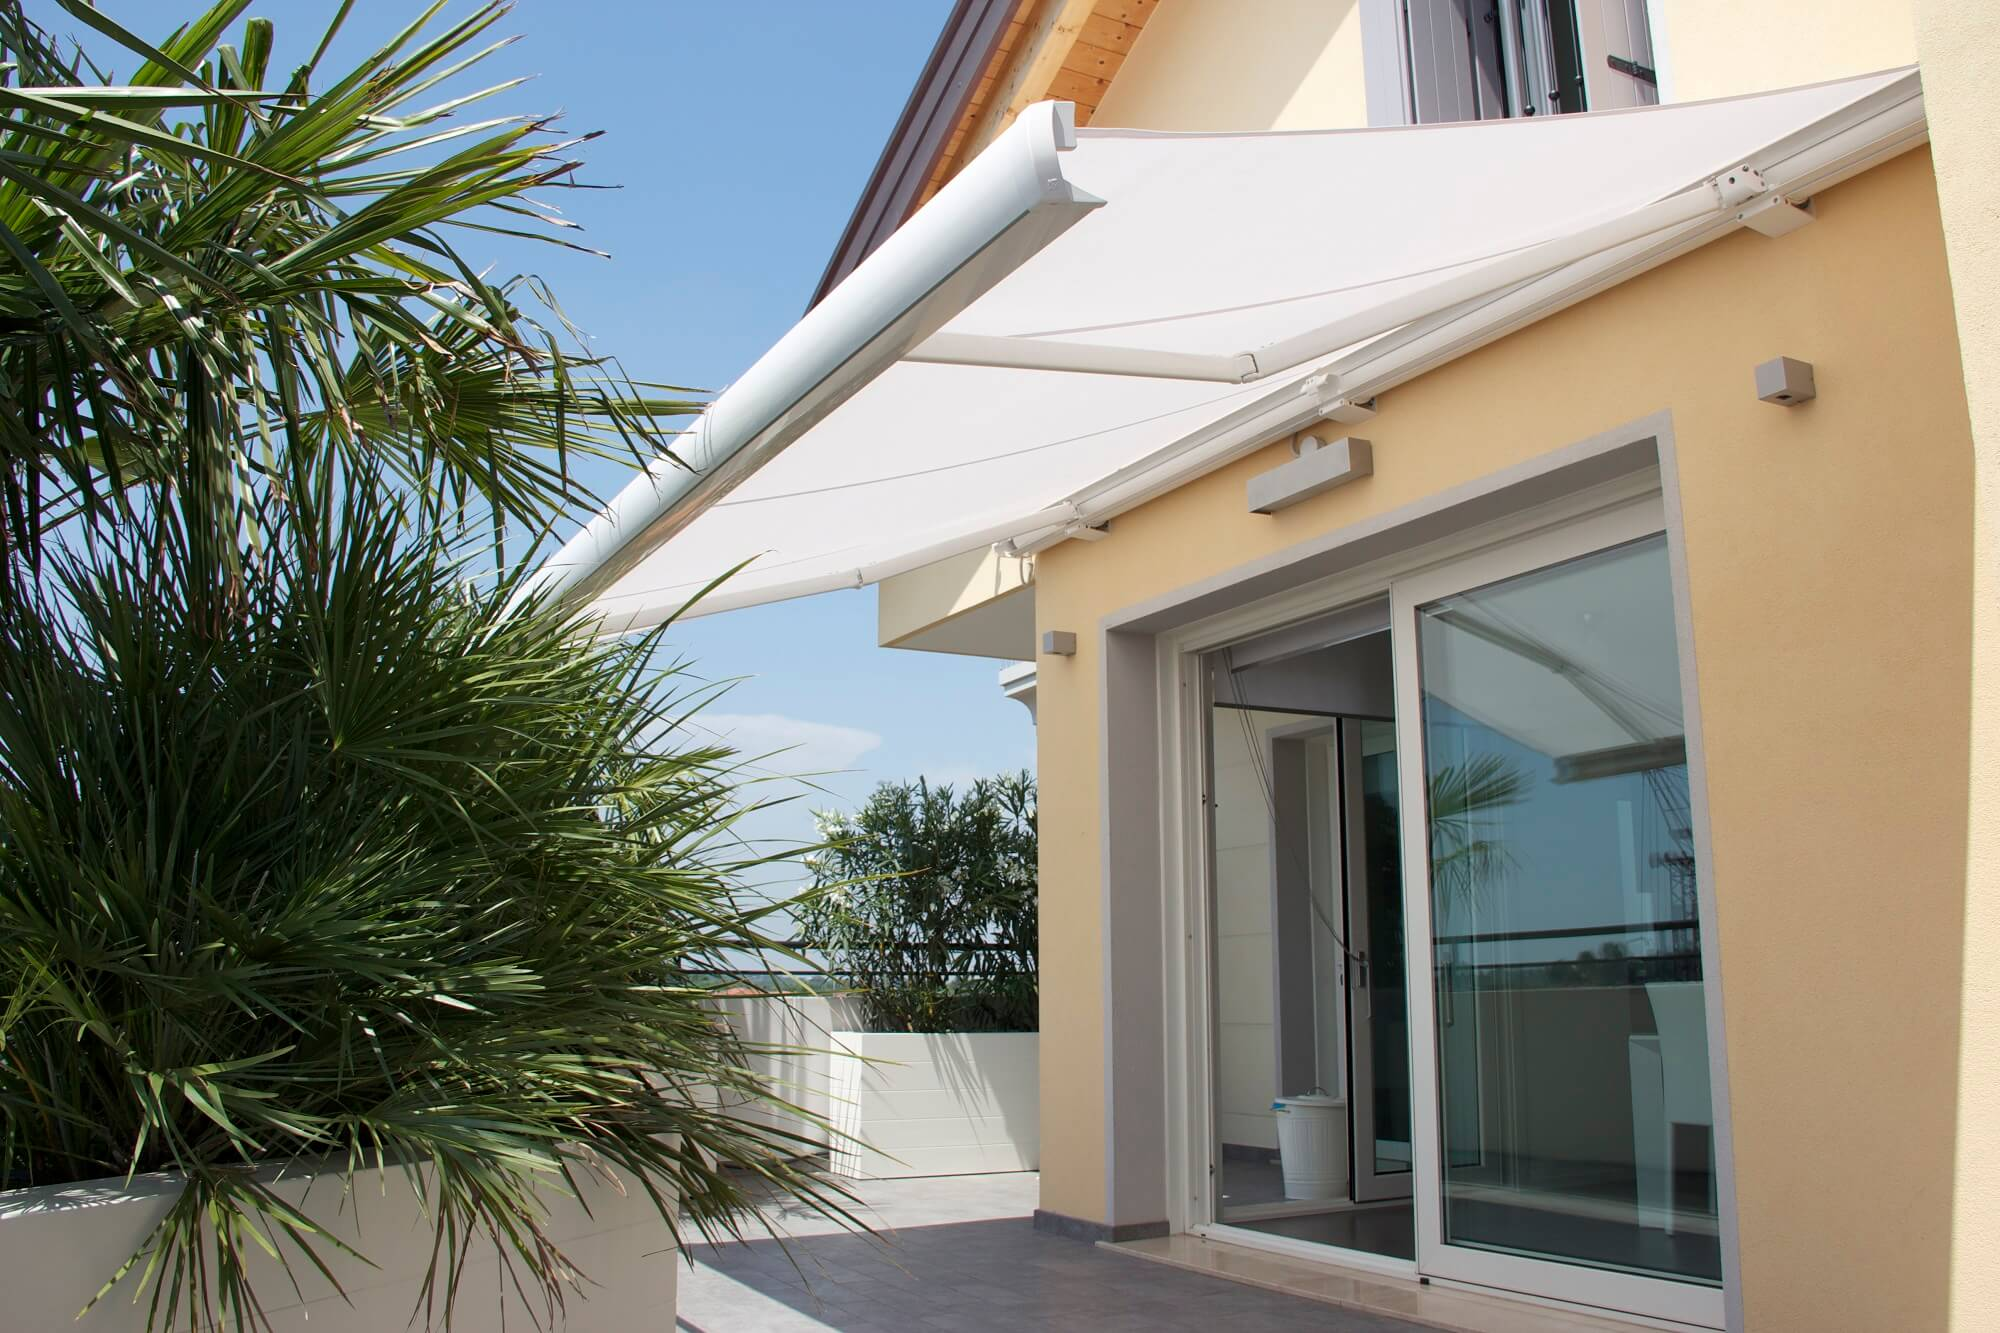 retractable awning full cassette lateral arm residential awning fully extended